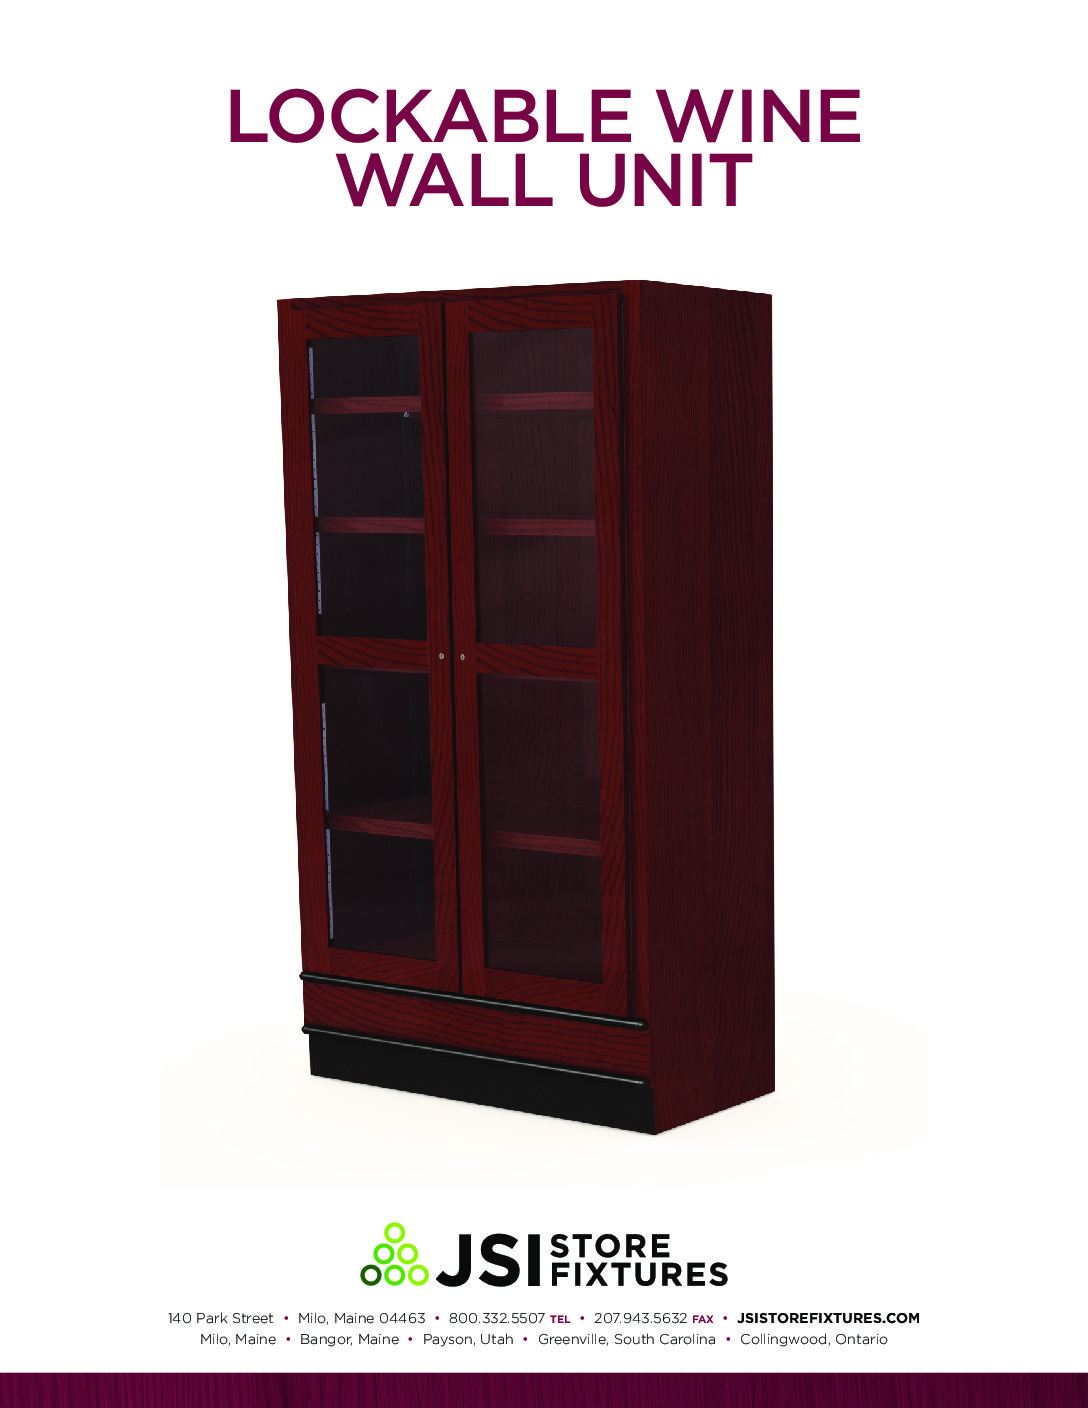 Lockable Wine Wall Unit Spec Sheet